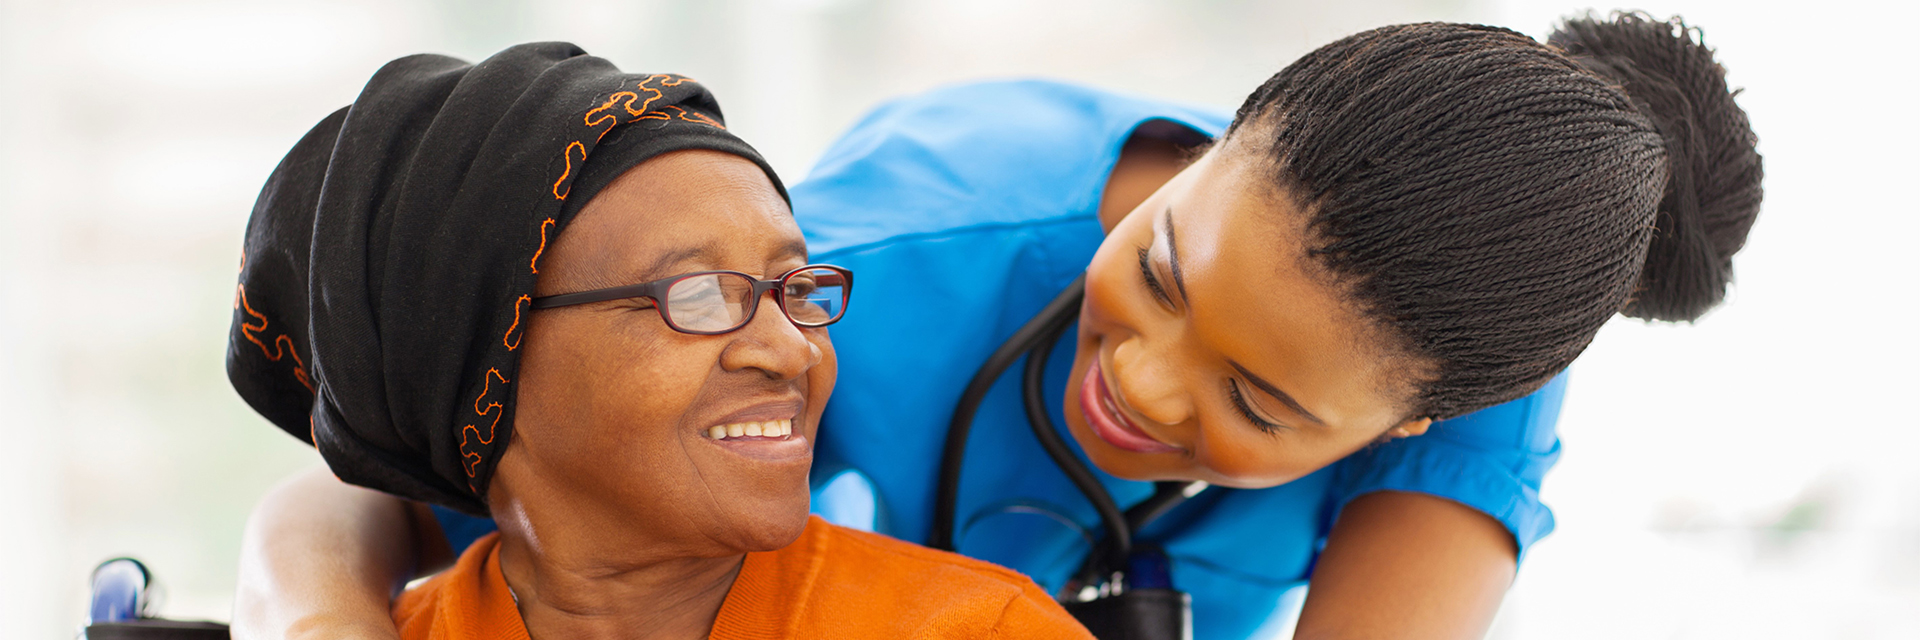 nurse in blue scrubs hugging woman in orange top